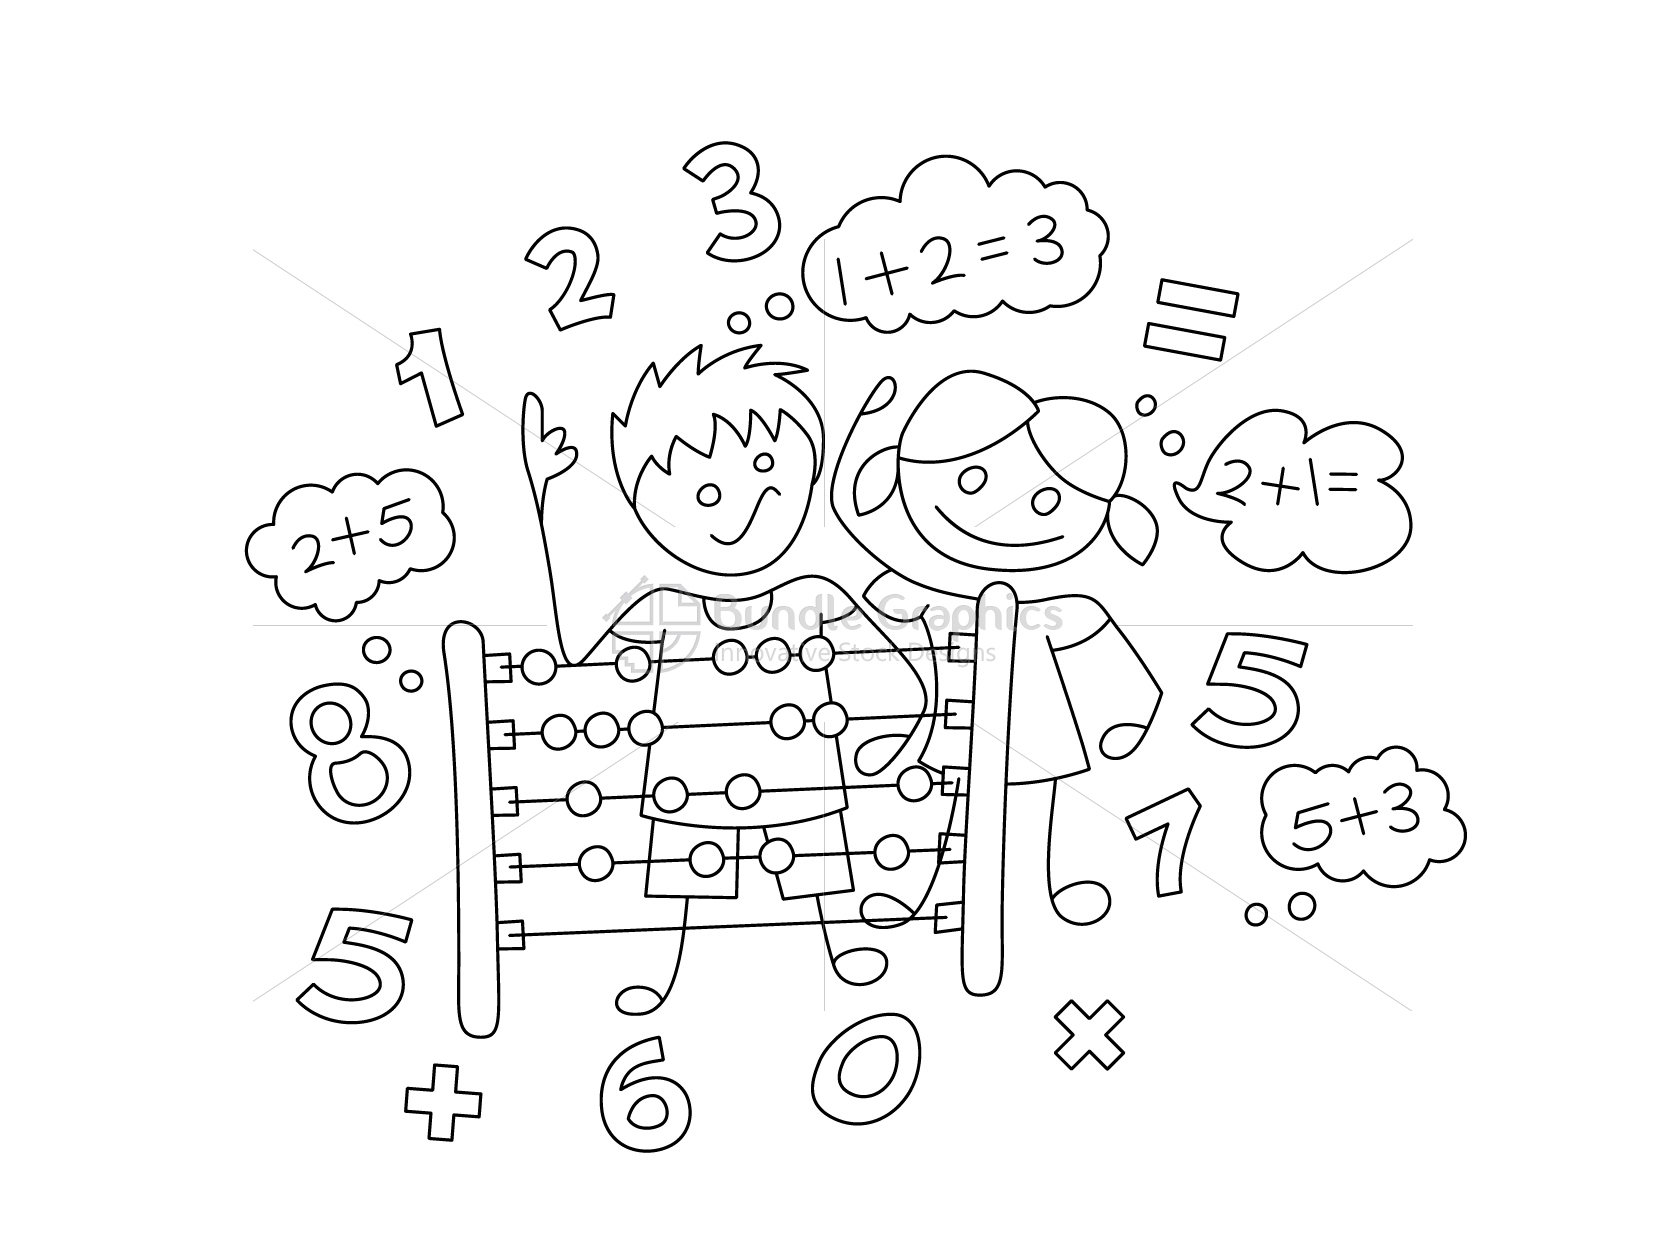 Primary Abacus Class Graphical Illustration example image 2